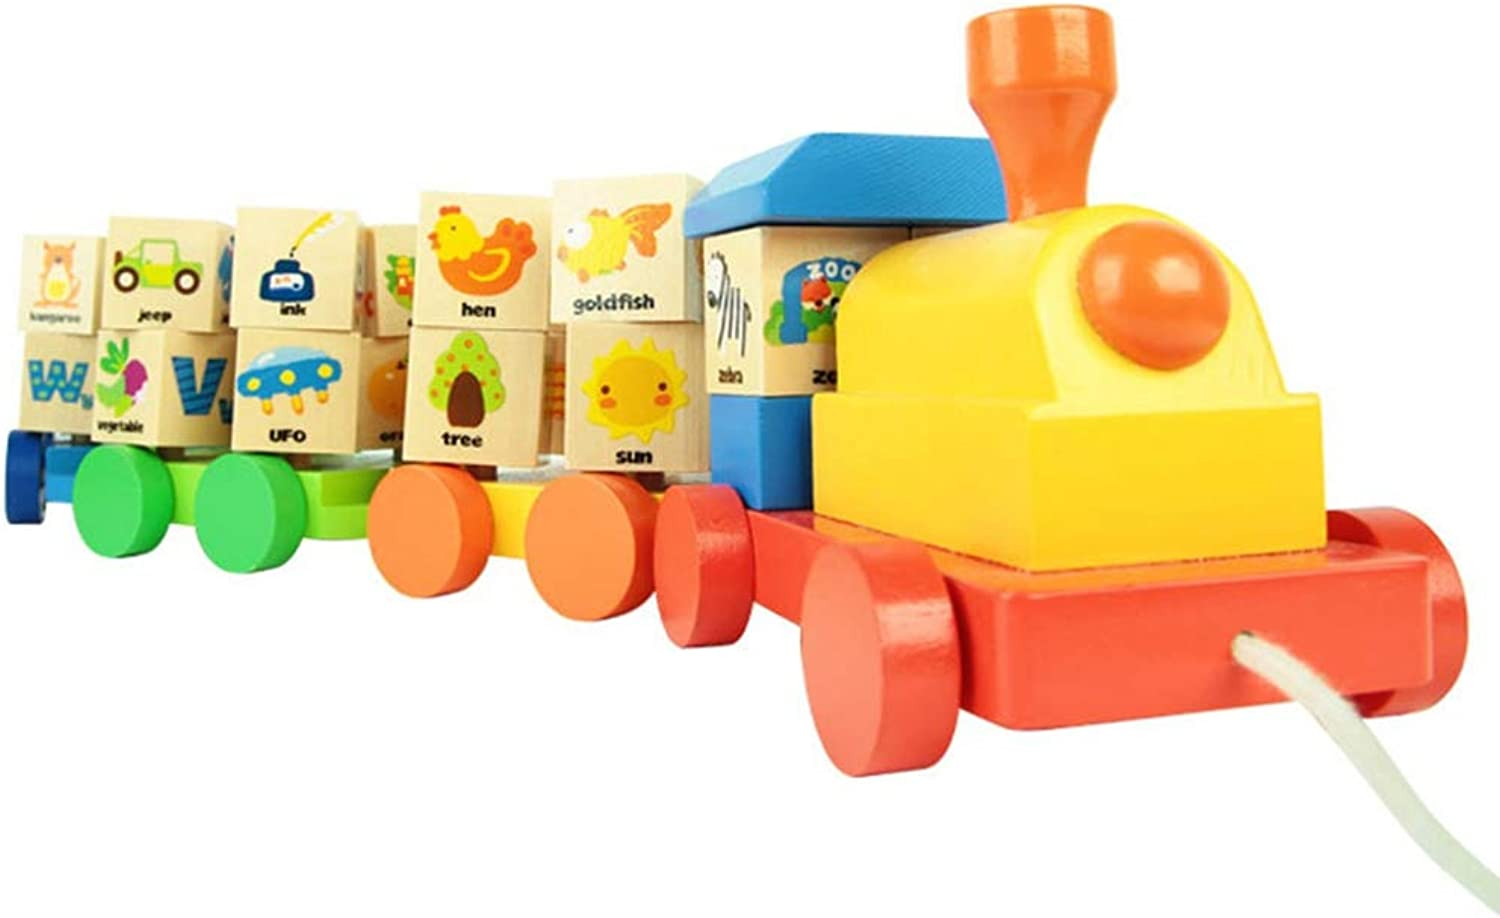 Xiaoyue Wooden Geometric Blocks Train Building Stacking Set Toy,PreKindergarten Toys,Assembly Pull Along Puzzle For Kids